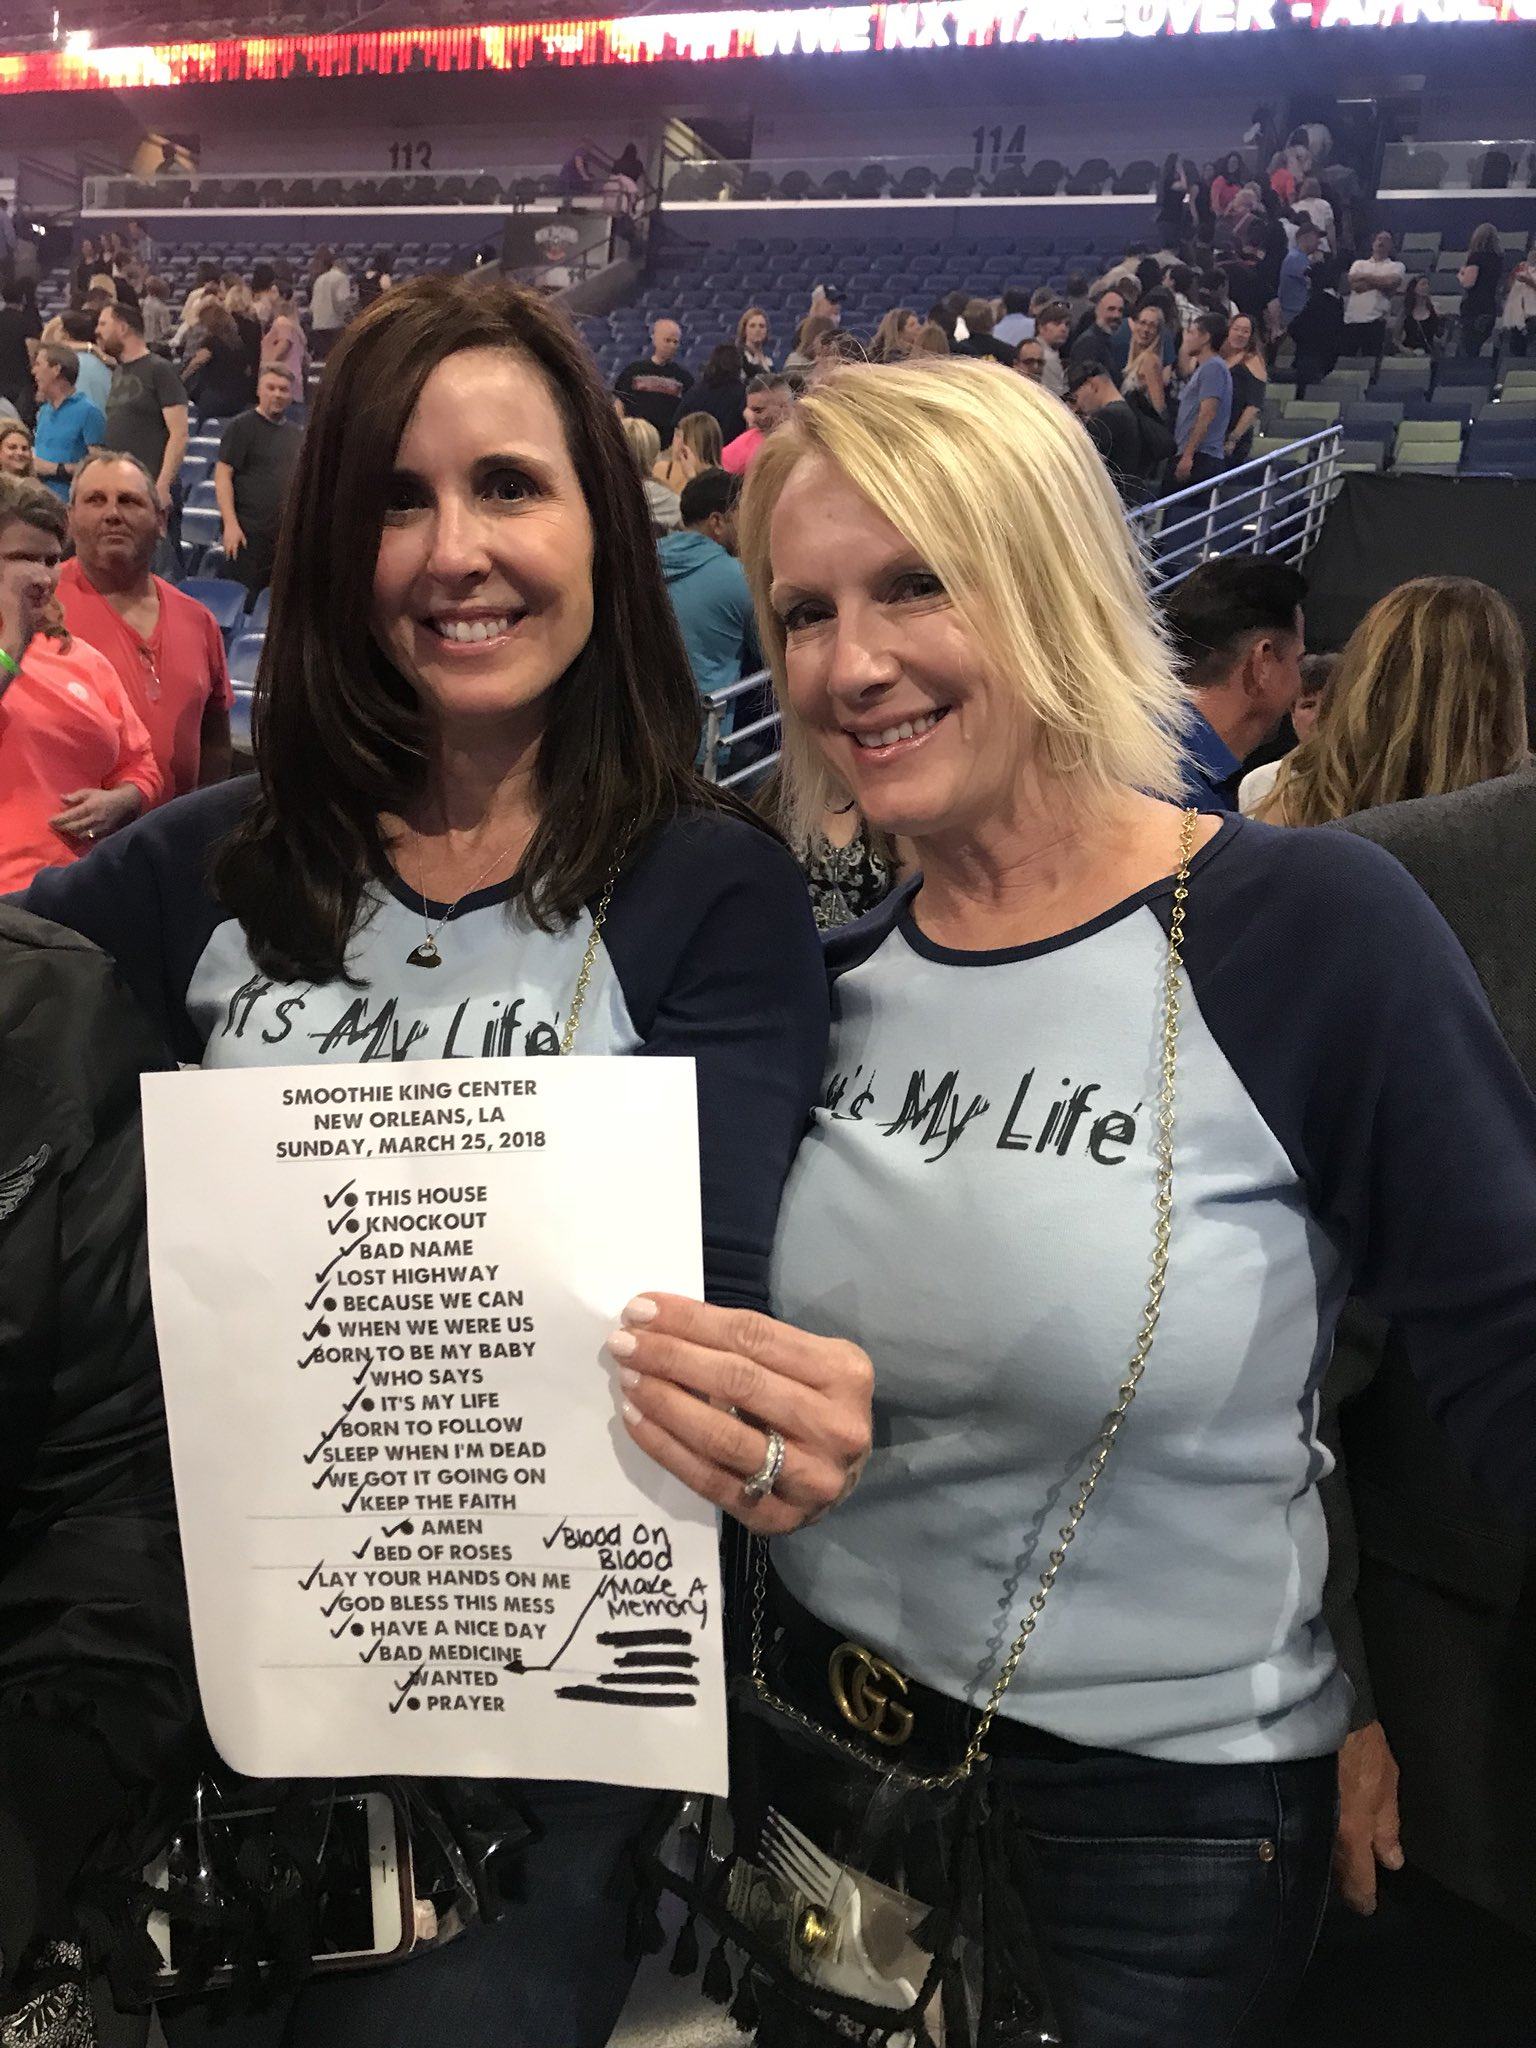 We had an awesome time in New Orleans! Let's see your pictures from the night. Post them using #THINFStour! https://t.co/z65fyl9qNq